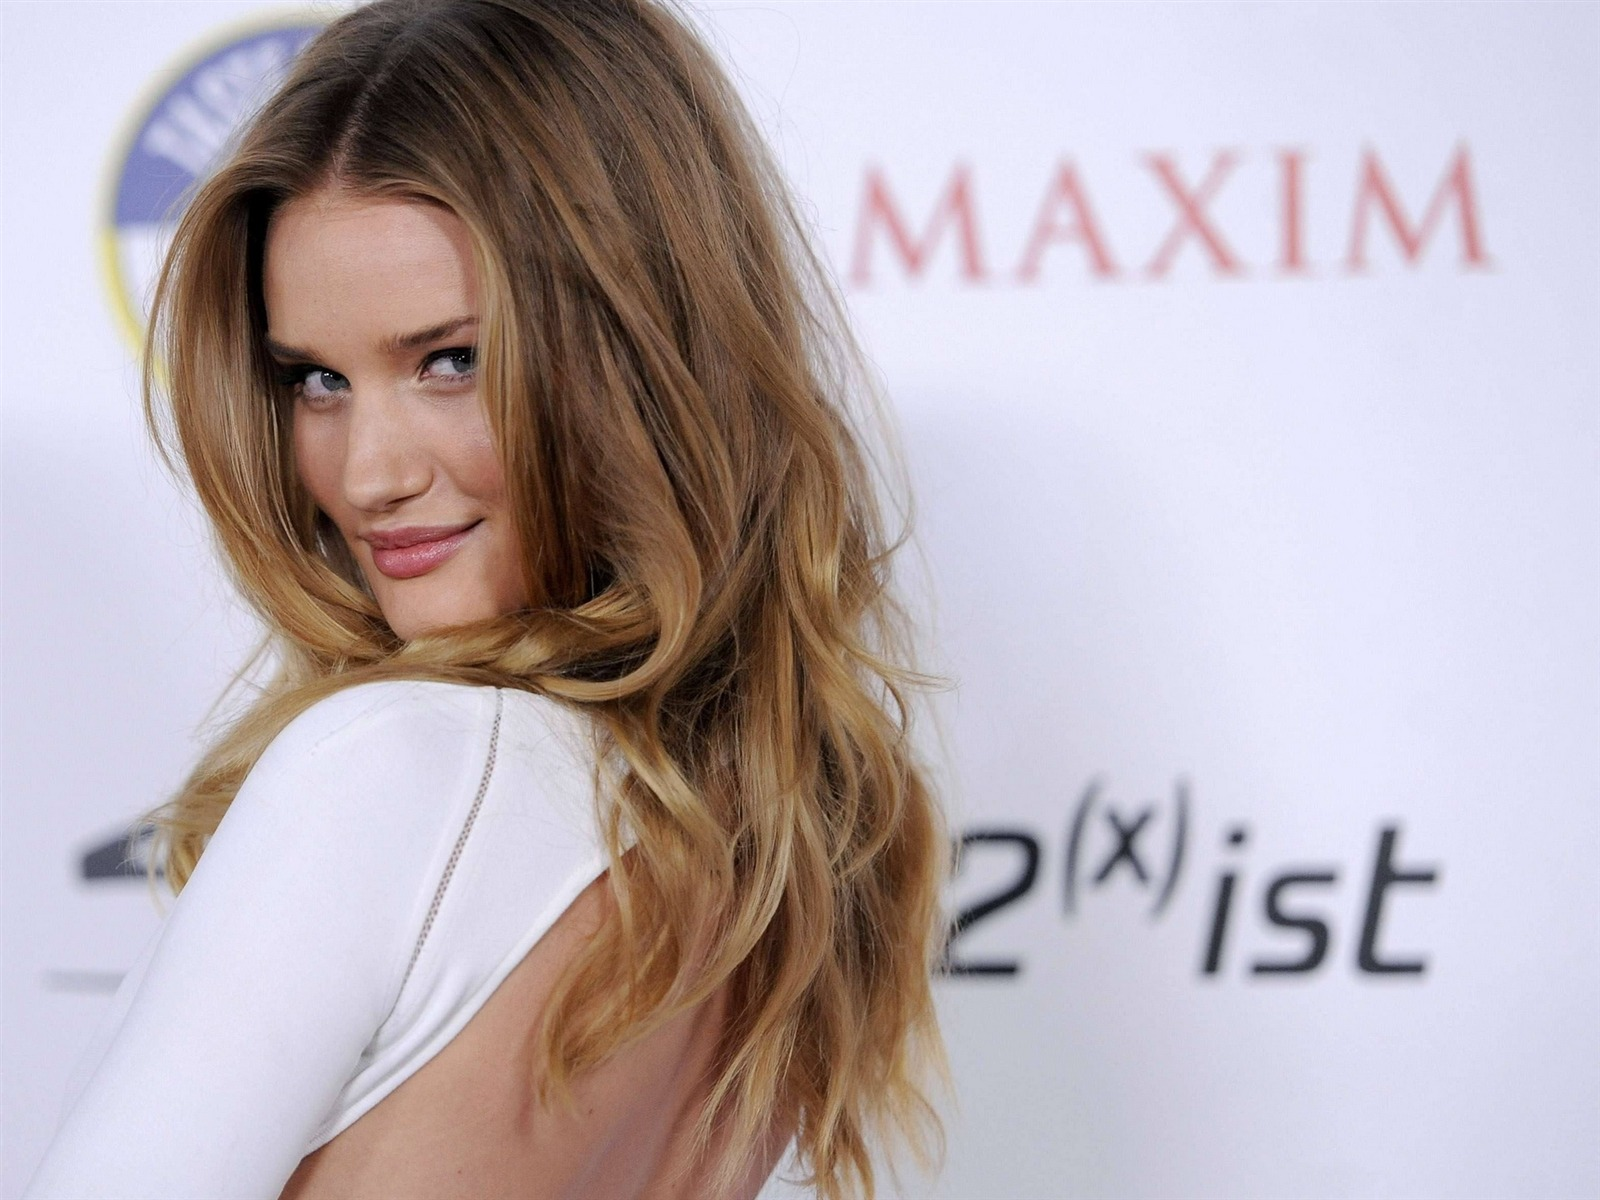 Rosie Huntington Whiteley #007 - 1600x1200 Wallpapers Pictures Photos Images